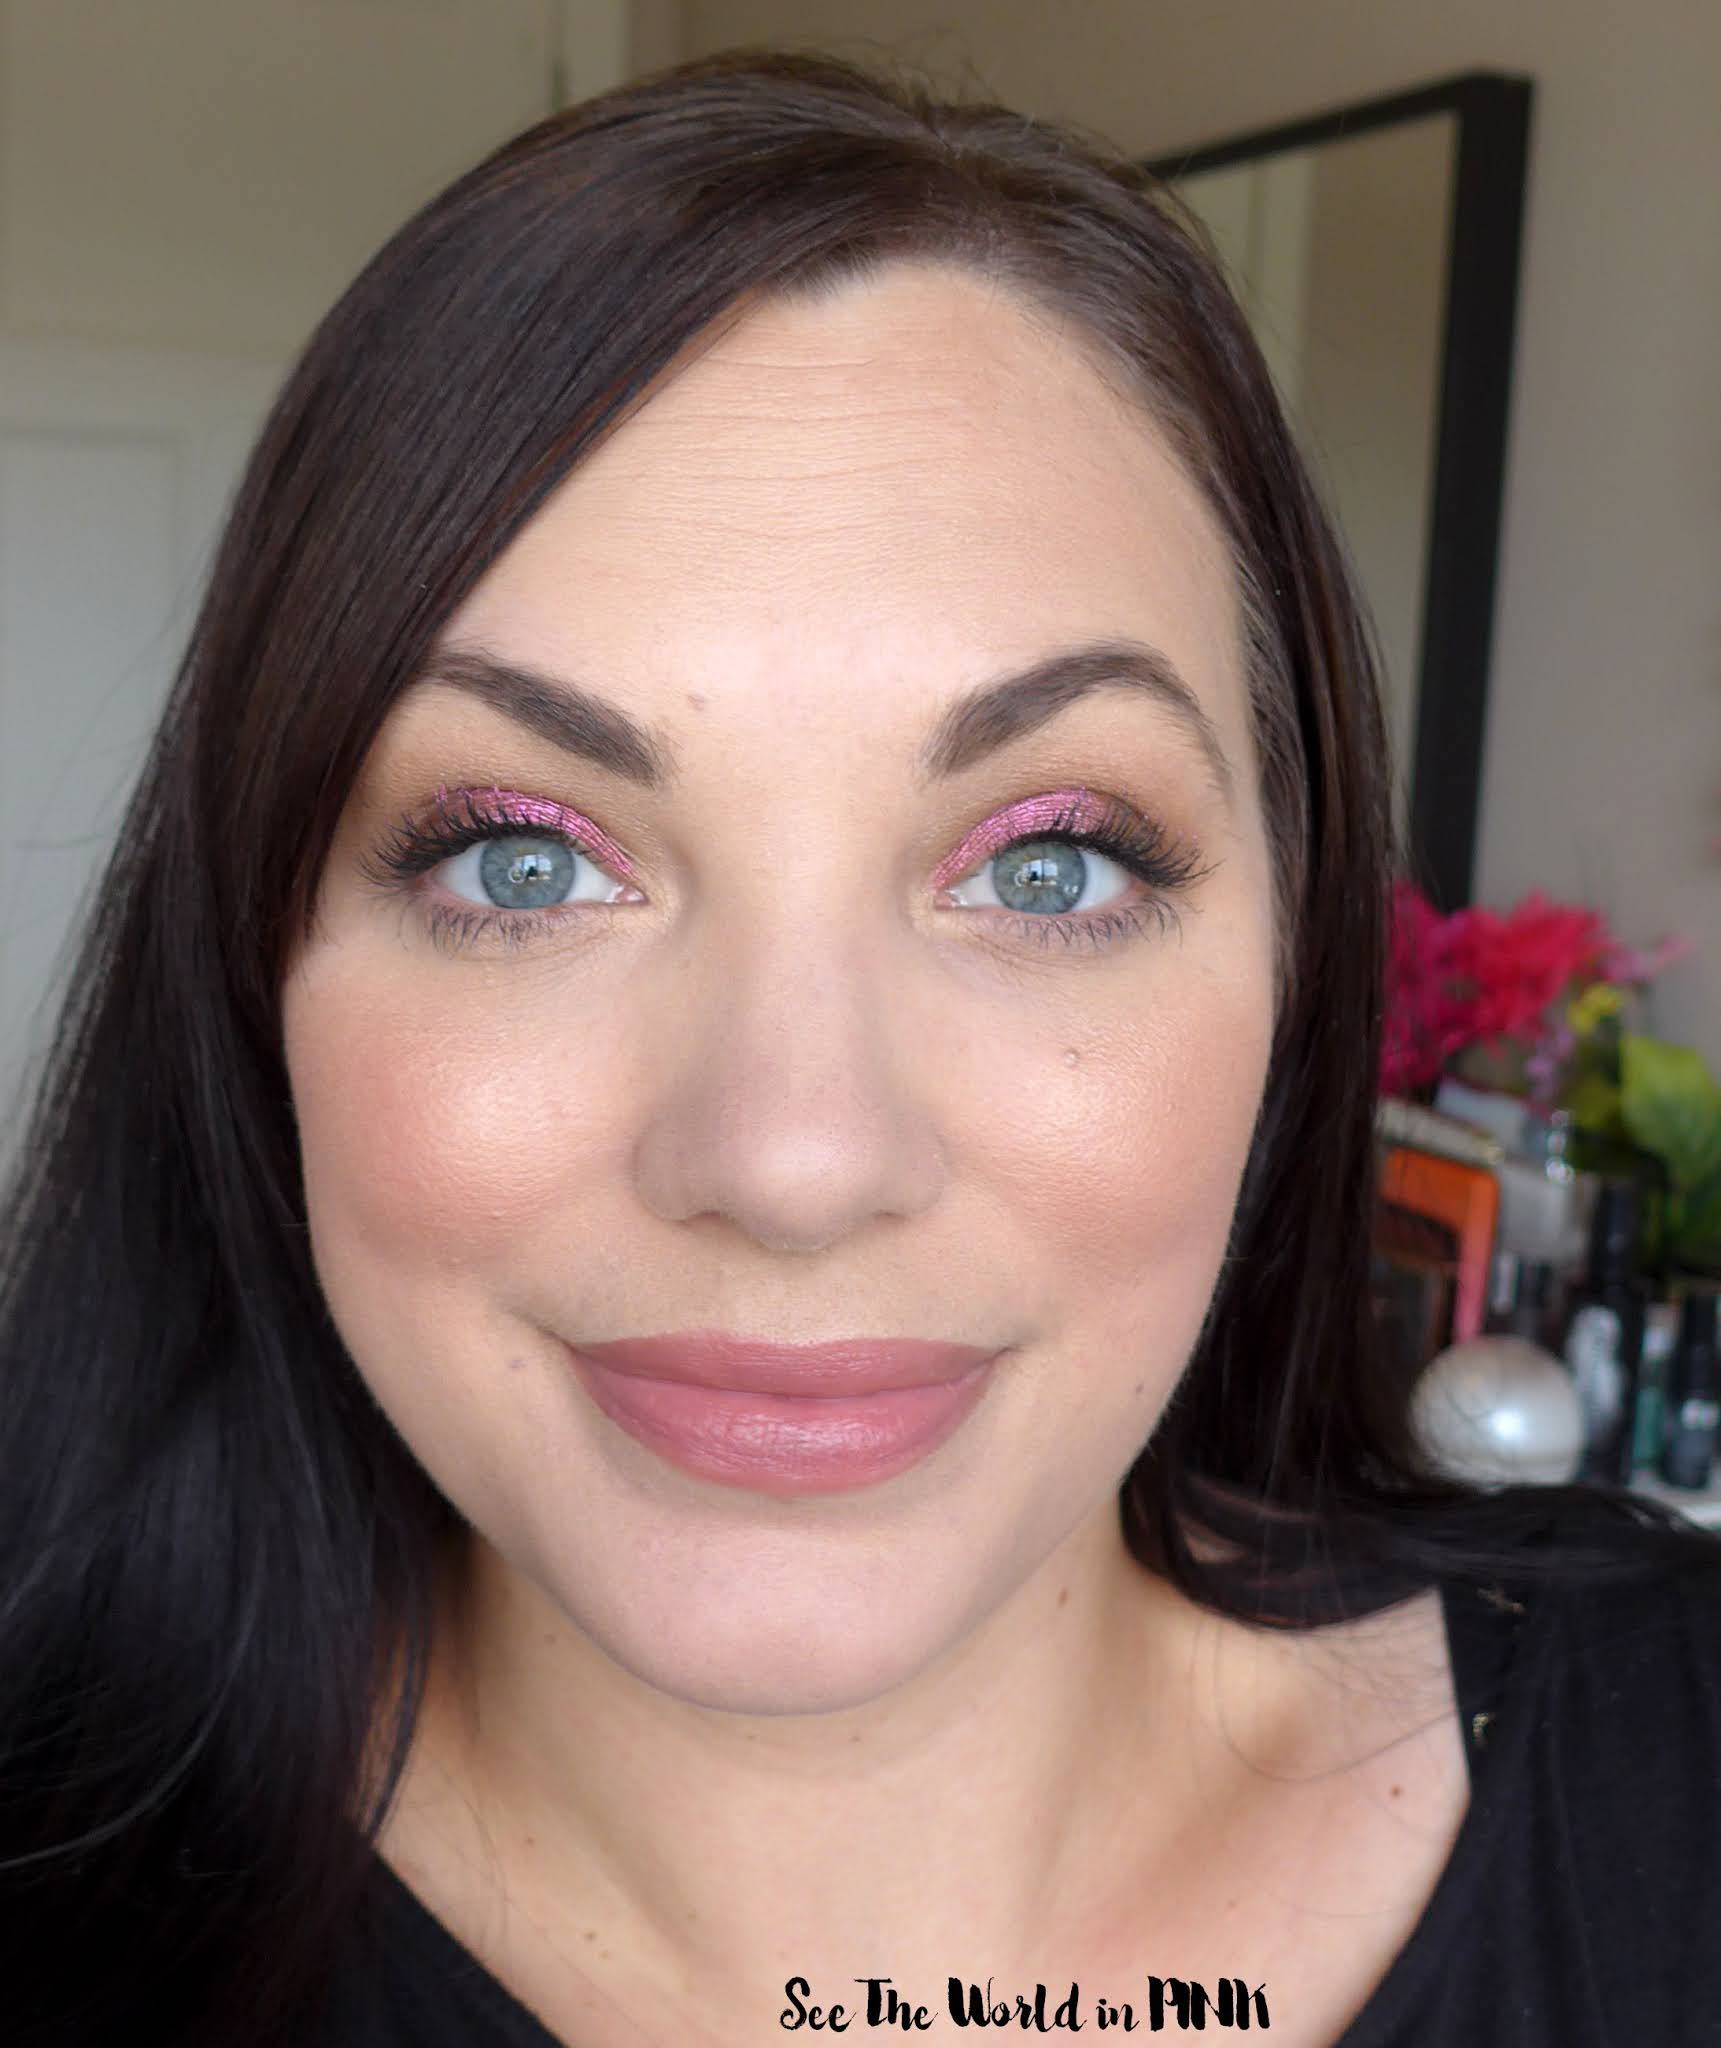 Natasha Denona Chromium Multichrome Liquid Eyeshadow in Dragonfly